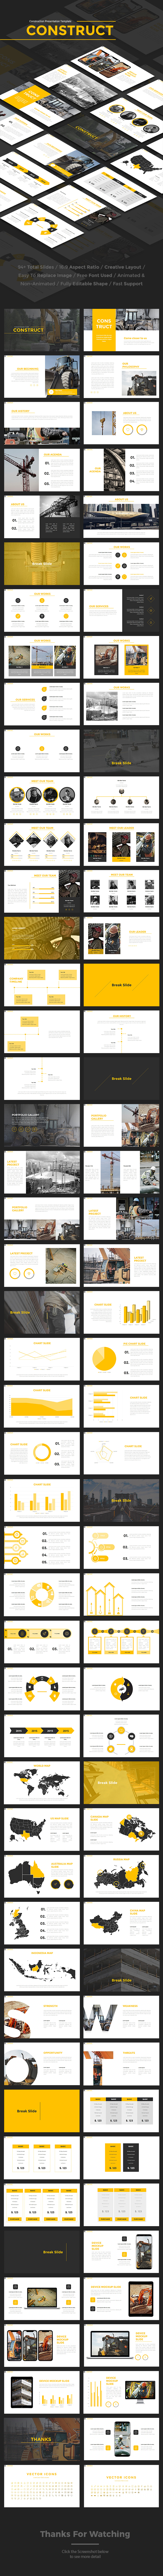 Construct - Construction Powerpoint Template - Business PowerPoint Templates